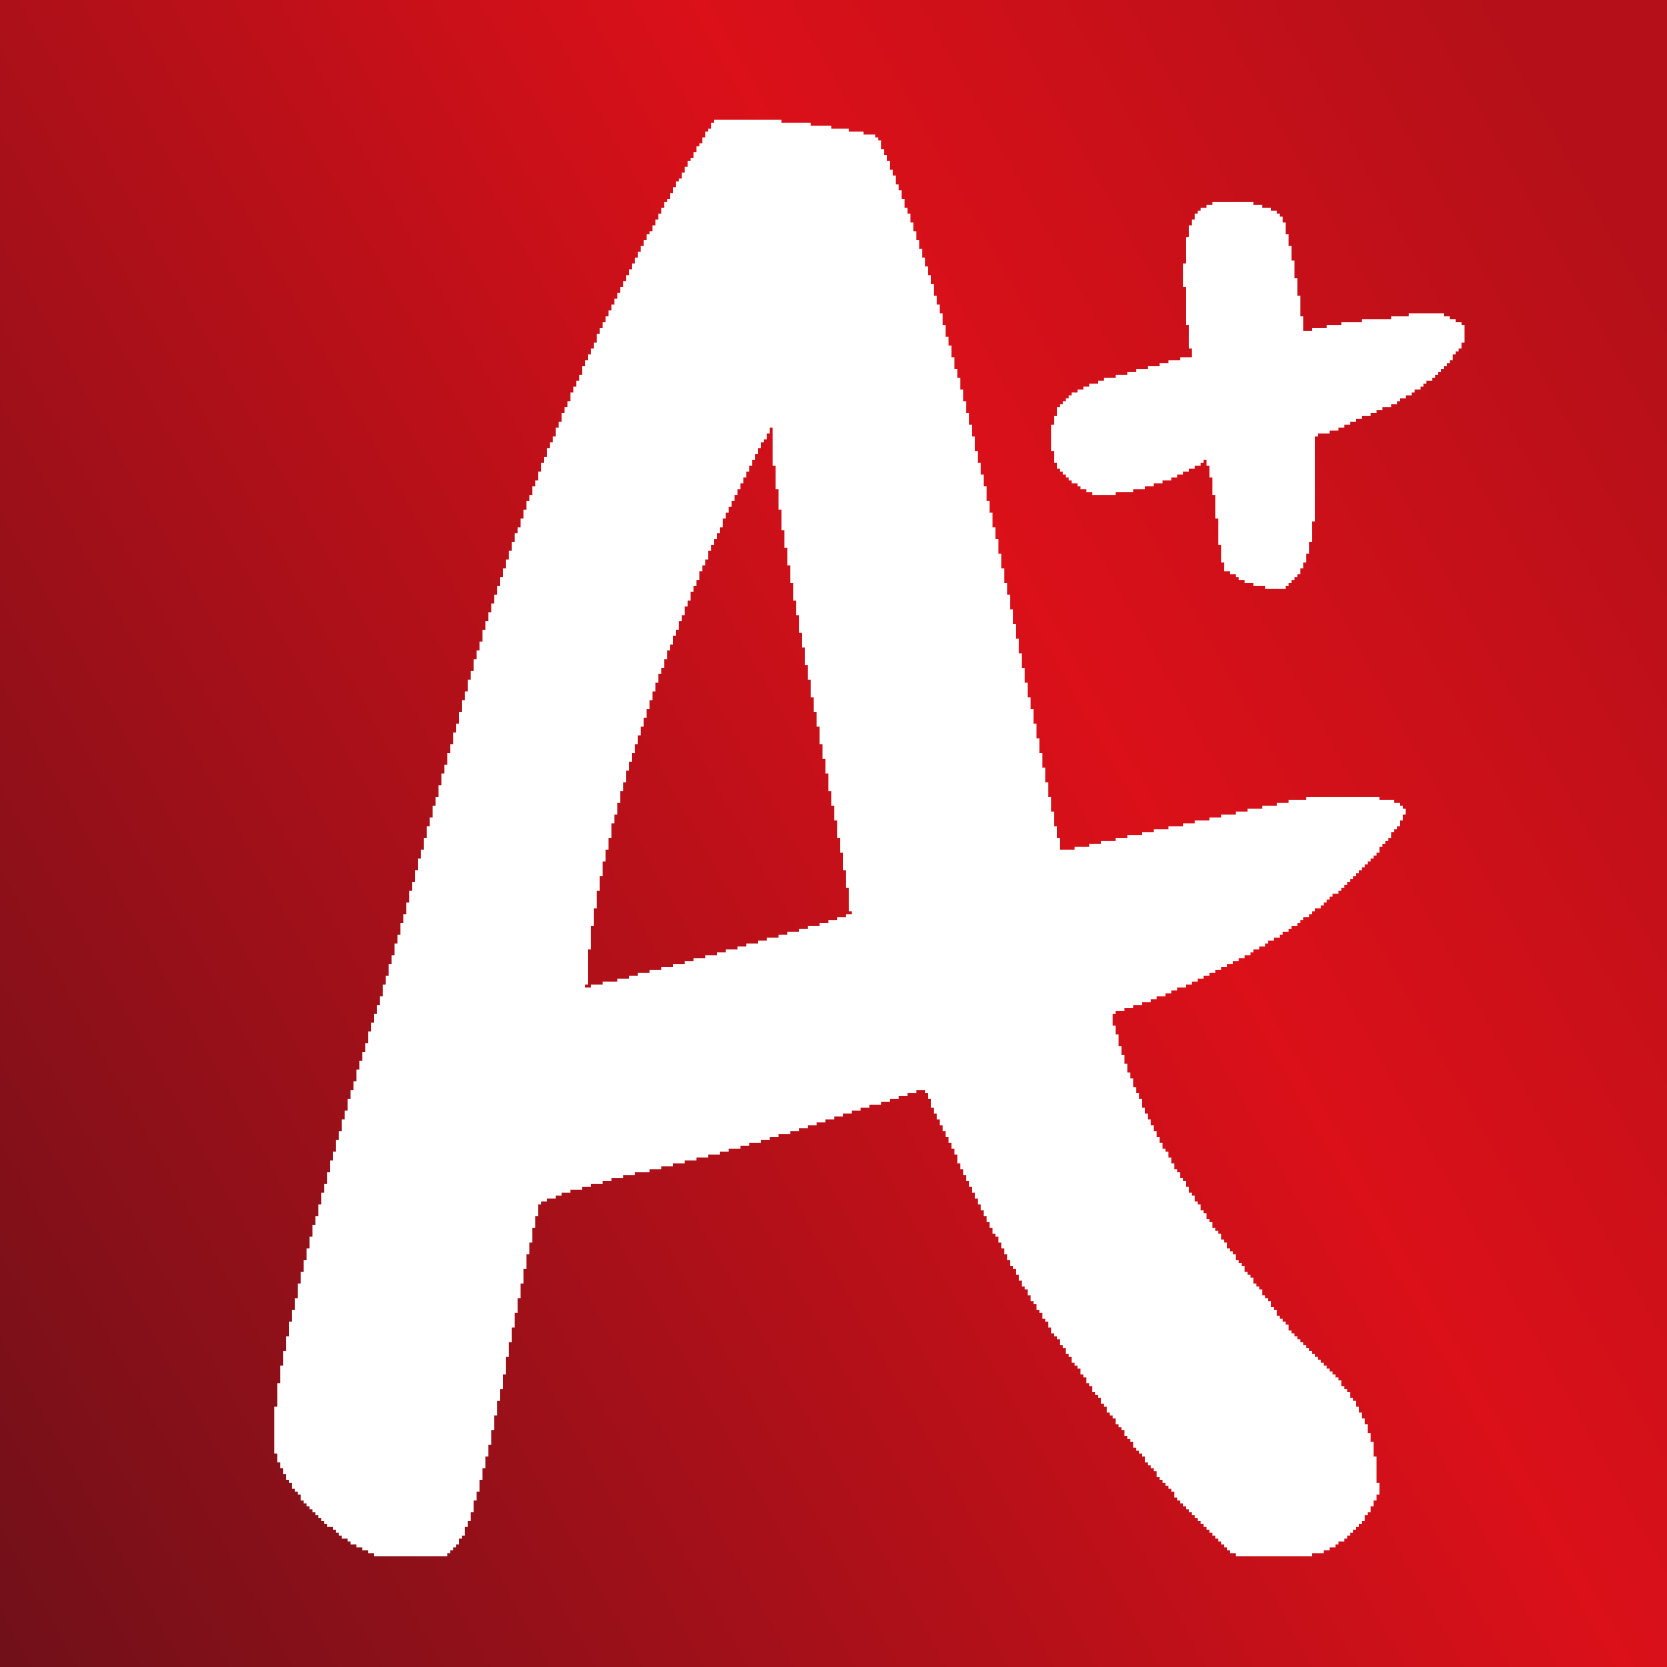 A+ logo new - gradient red background